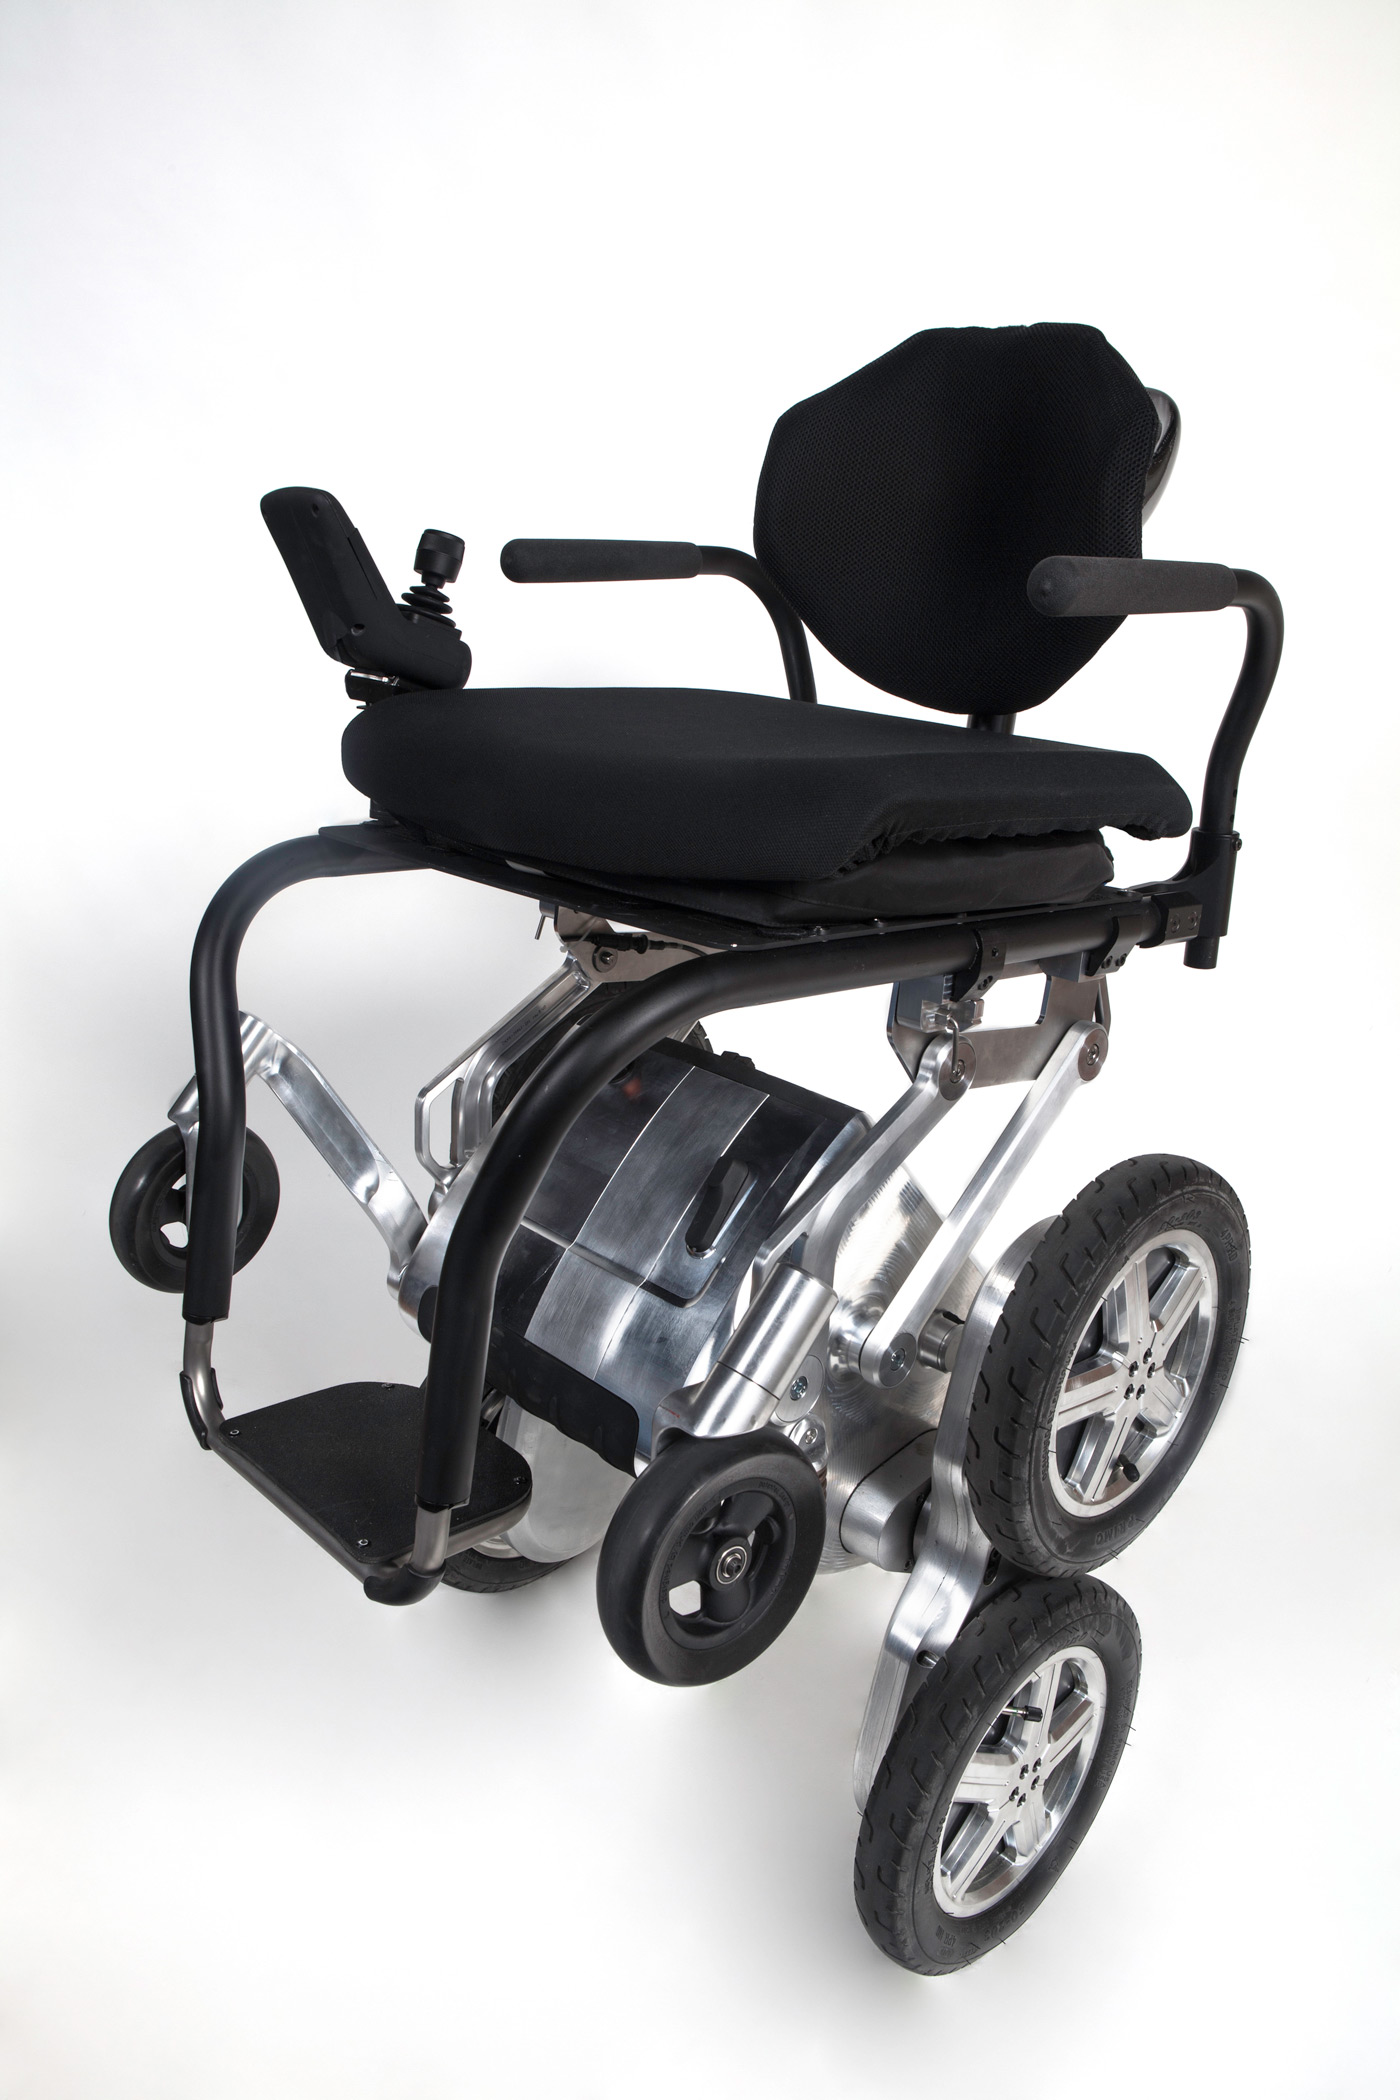 Next-generation iBot wheelchair prototype